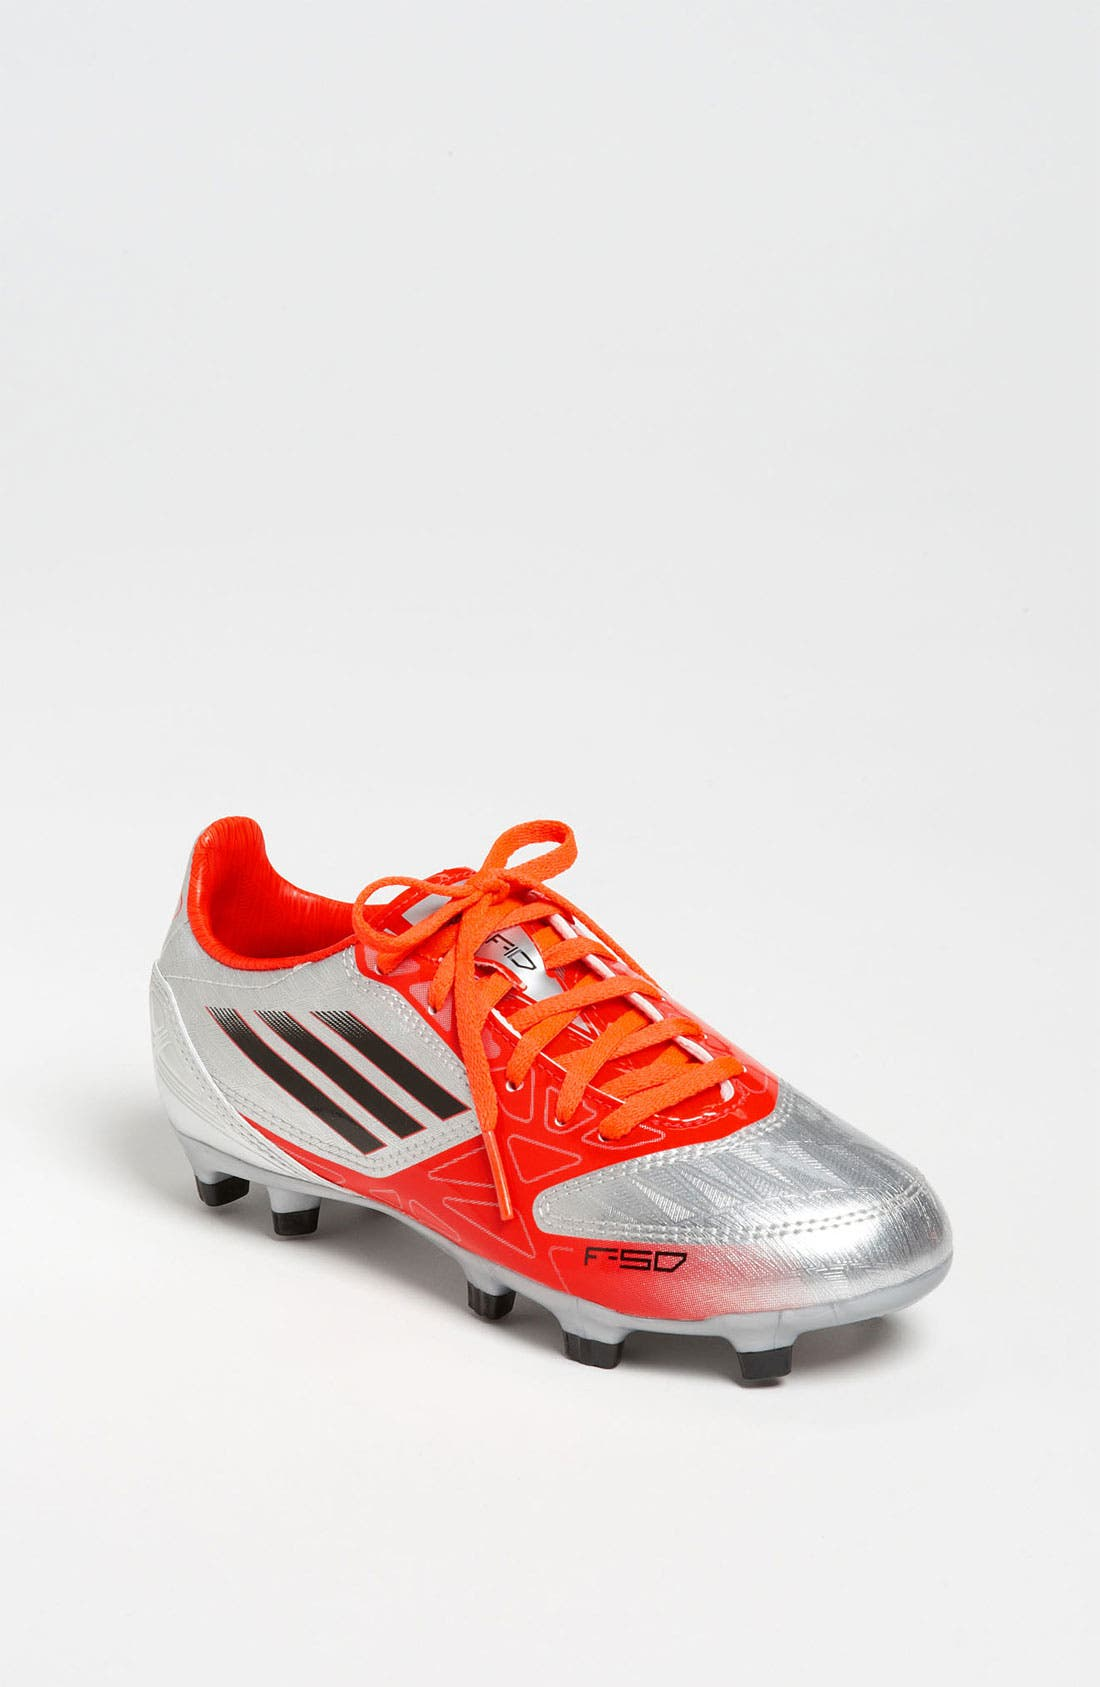 Main Image - adidas 'TRX FG' Soccer Cleats (Toddler, Little Kid & Big Kid)